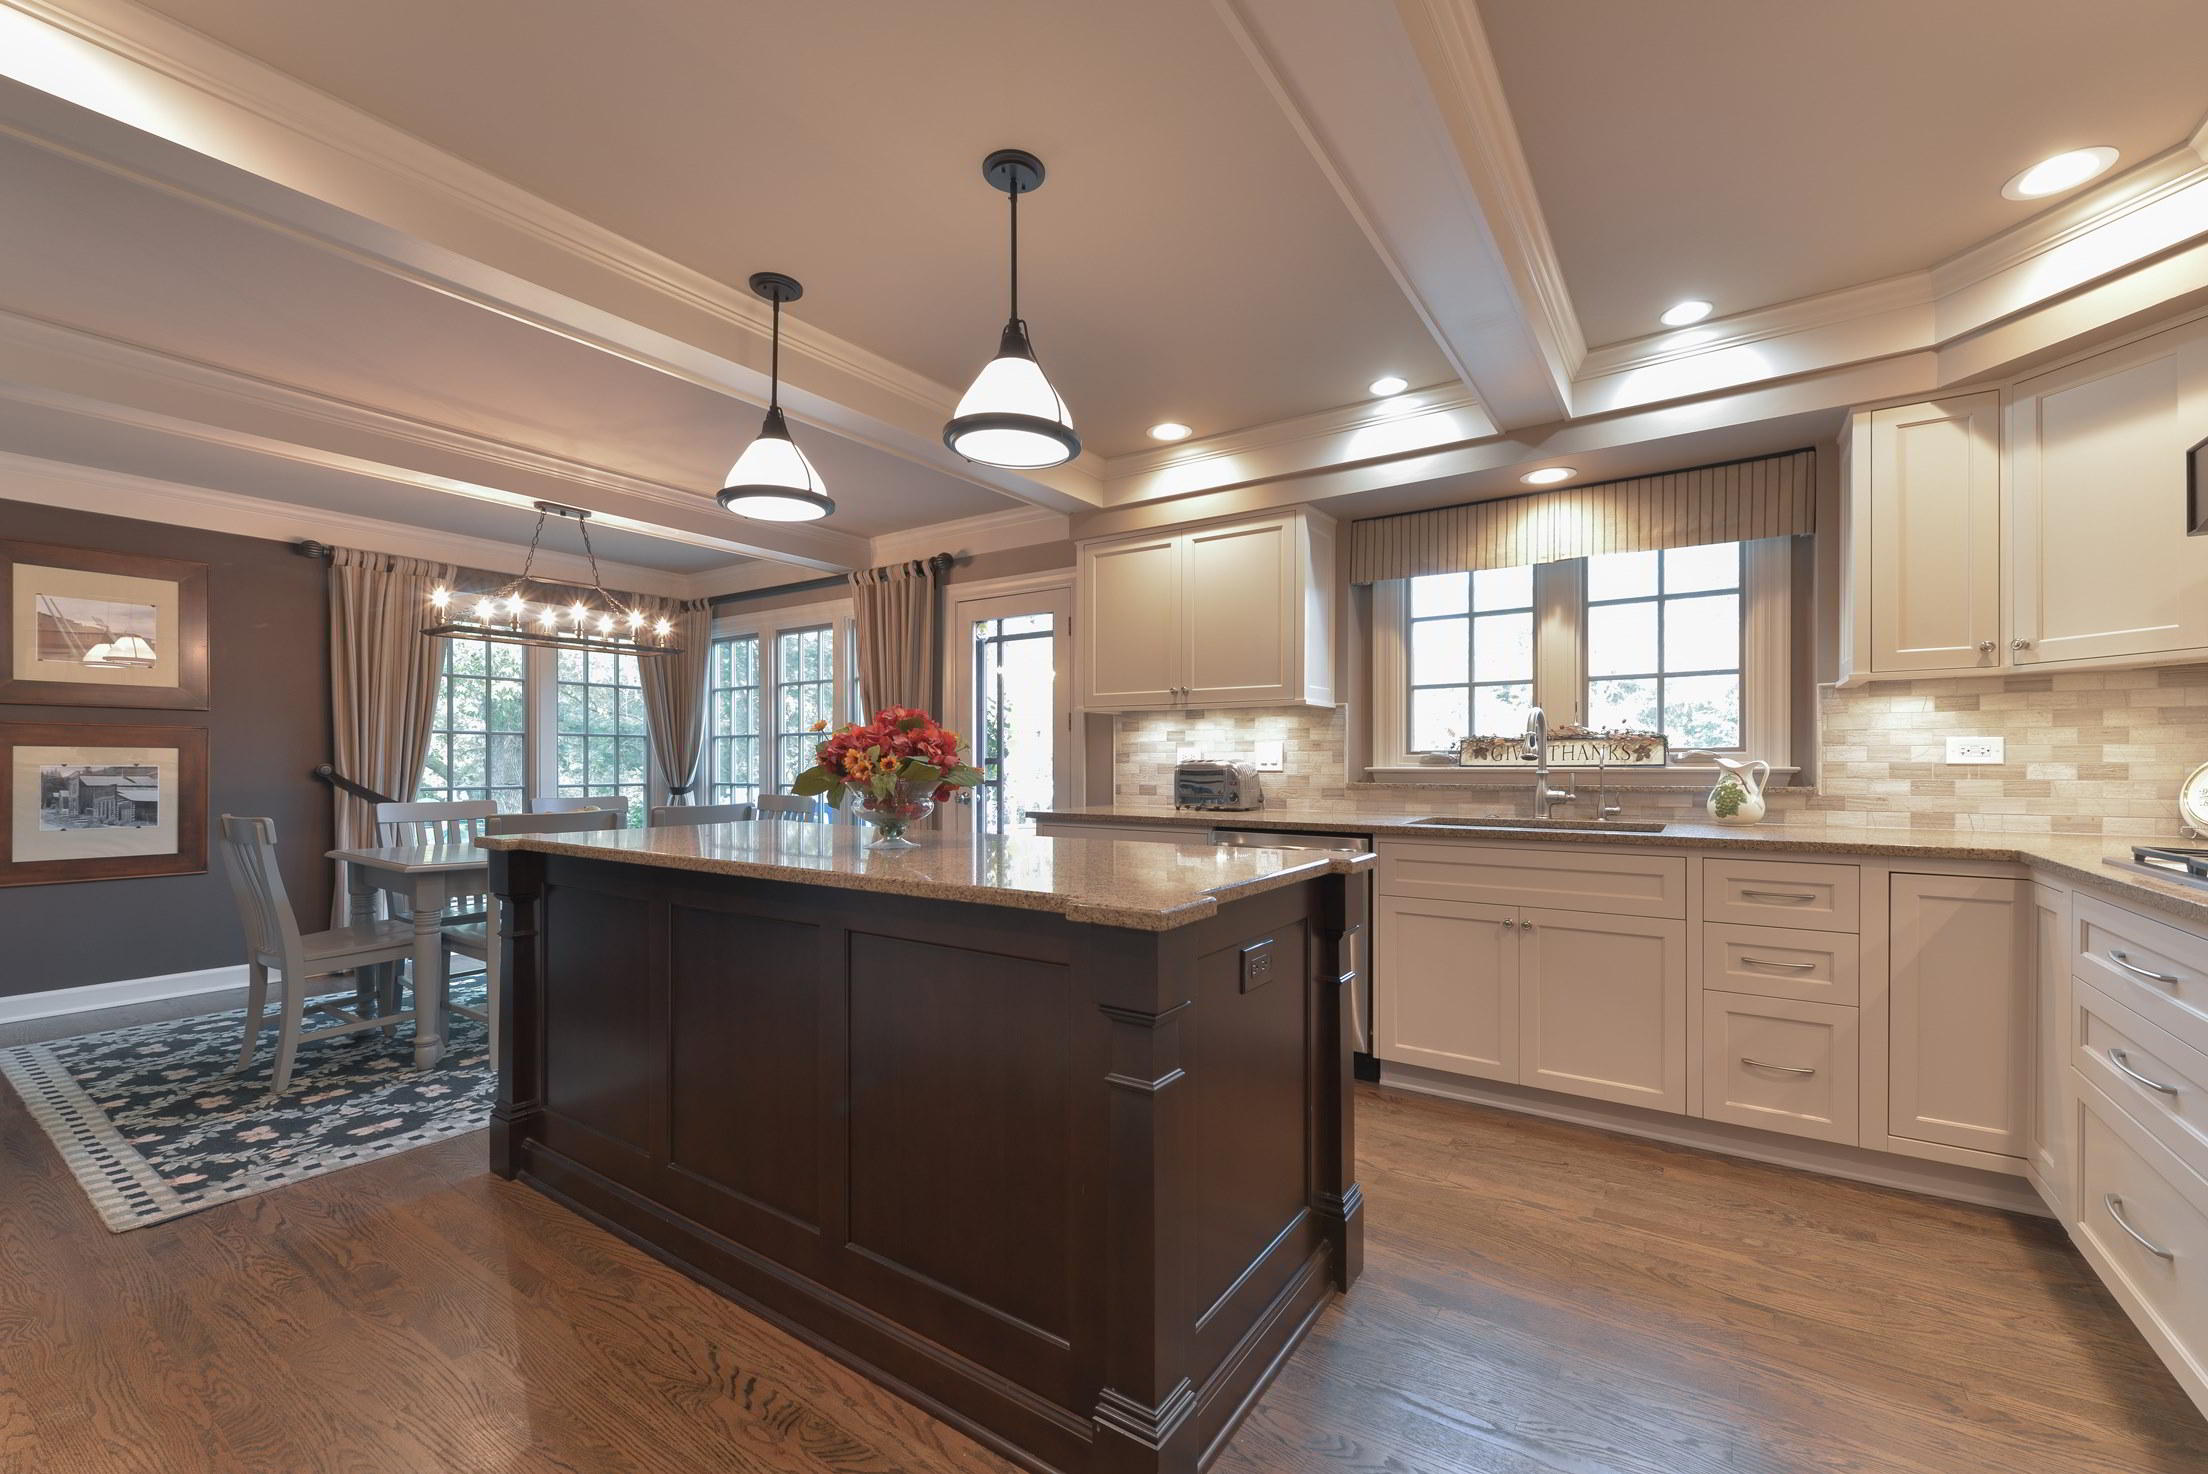 ... Footprint Of This Barrington IL Kitchen Design Was Preserved In The  Remodeling Process. We Began The Renovation With A Kitchen Design  Consultation.